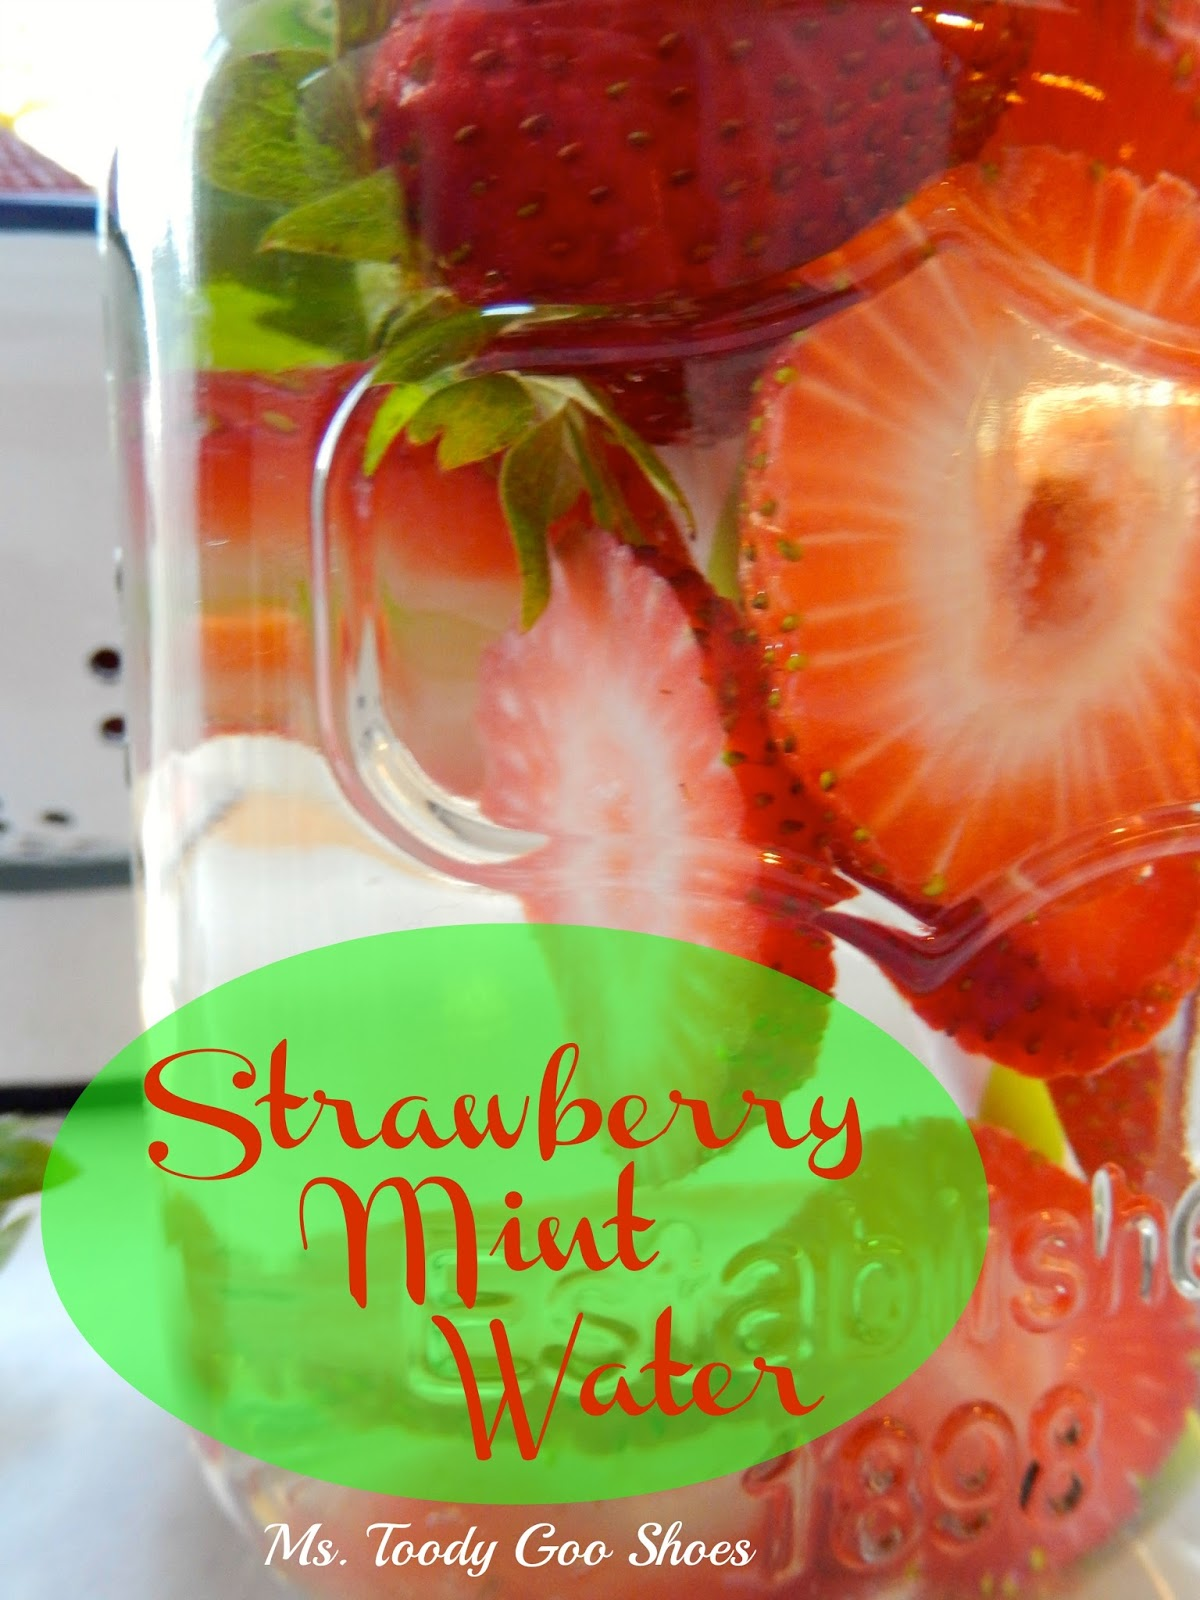 Strawberry Mint Water - A fresh and tasty change from ordinary water...and no calories! Ms. Toody Goo Shoes